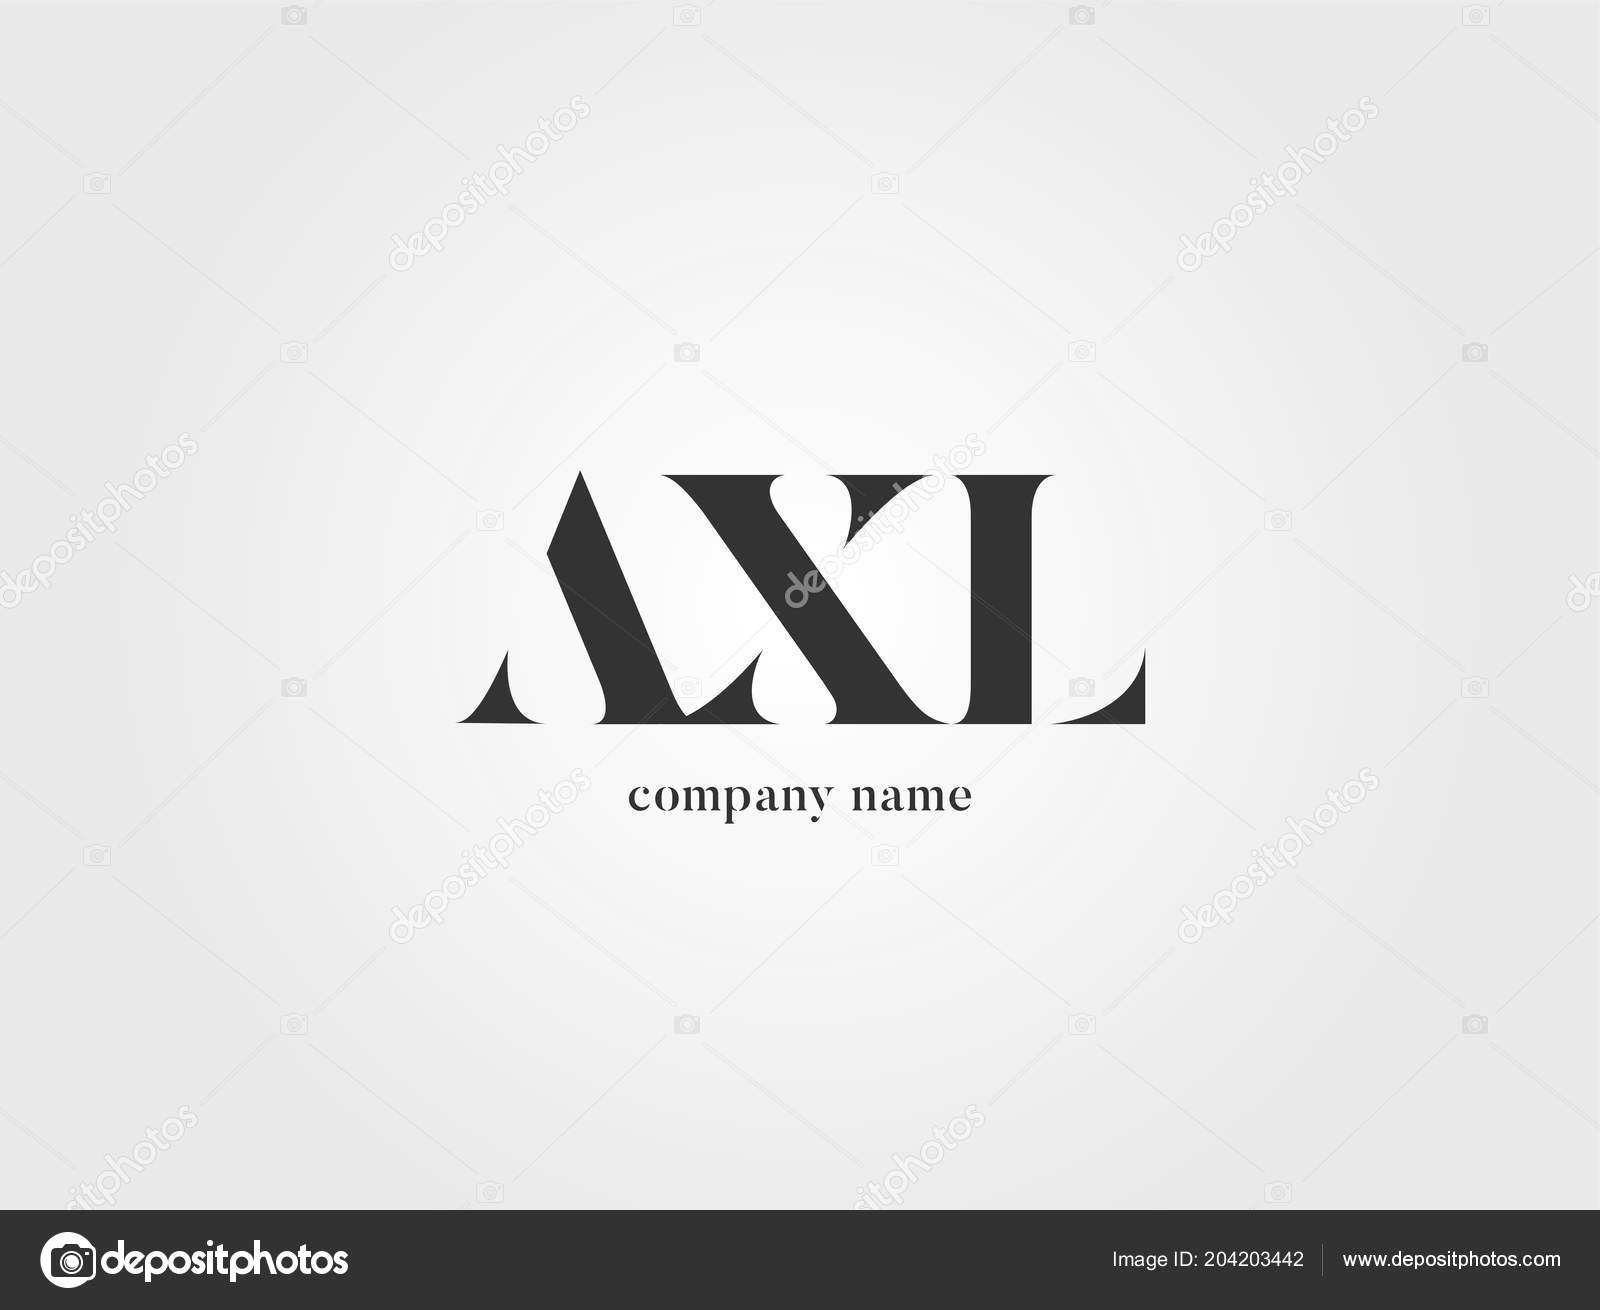 letters logo axl template business banner ストックベクター